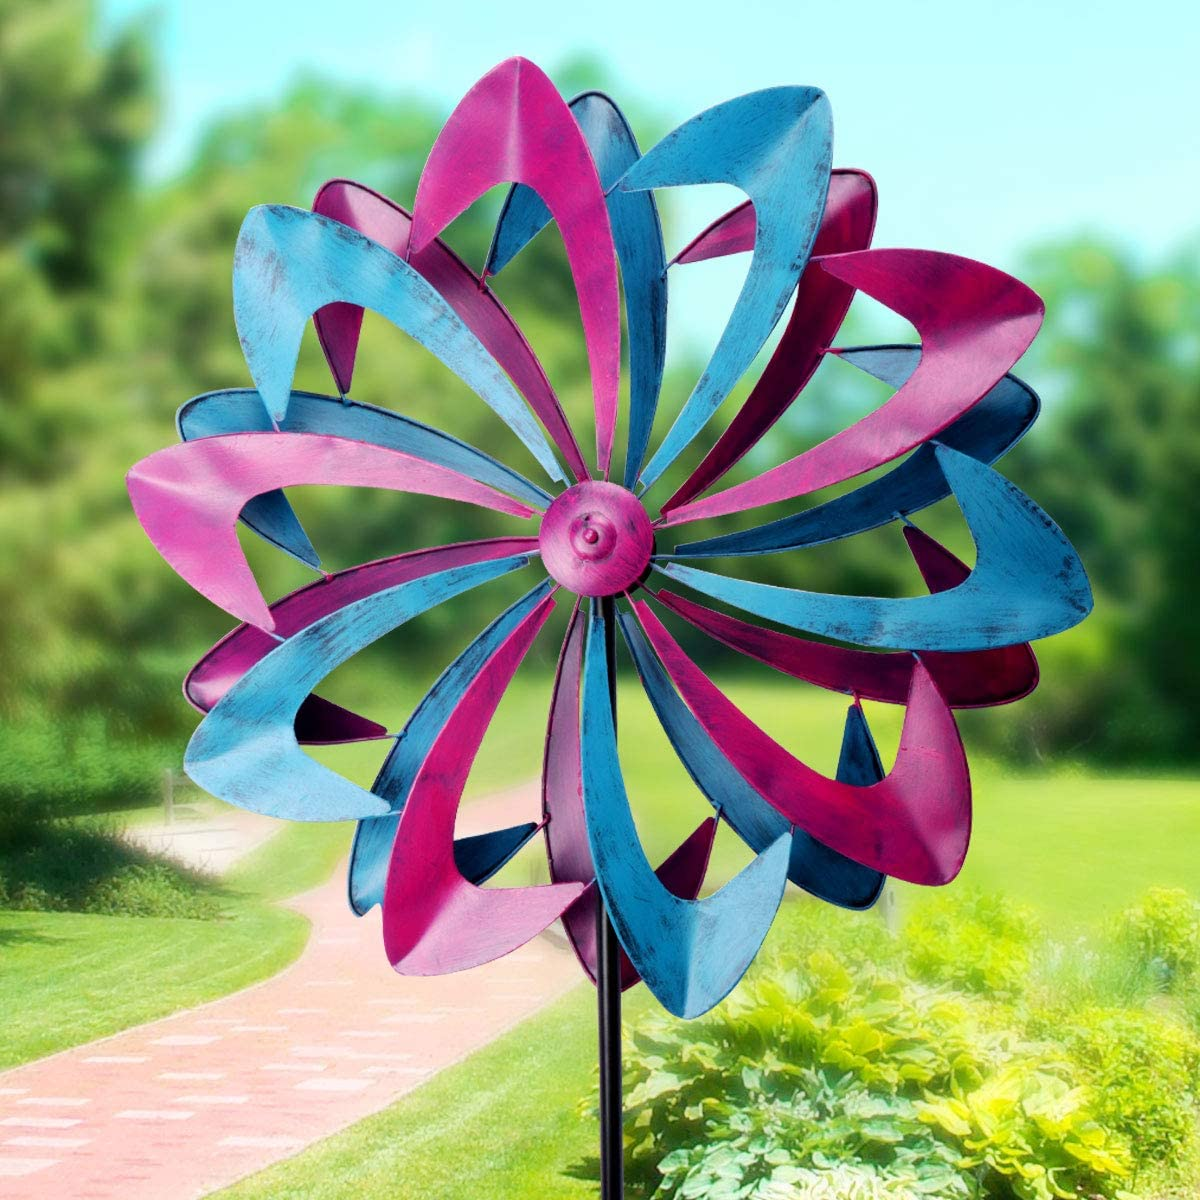 Lovinouse Premium Kinetic Wind Spinner, Large 26 Inch Diameter 84 Inch Height, Dual Direction Spin with Antique Steel Metal Finish, for Outdoor Yard Garden Decoration